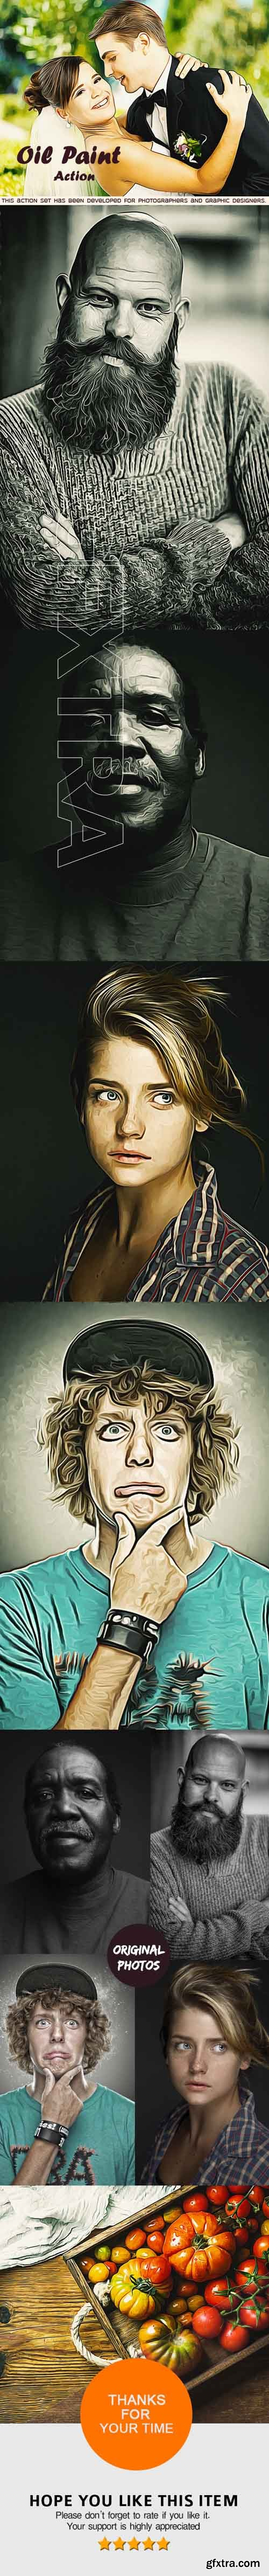 GraphicRiver - Oil Paint Action - Photoshop Action 20393418